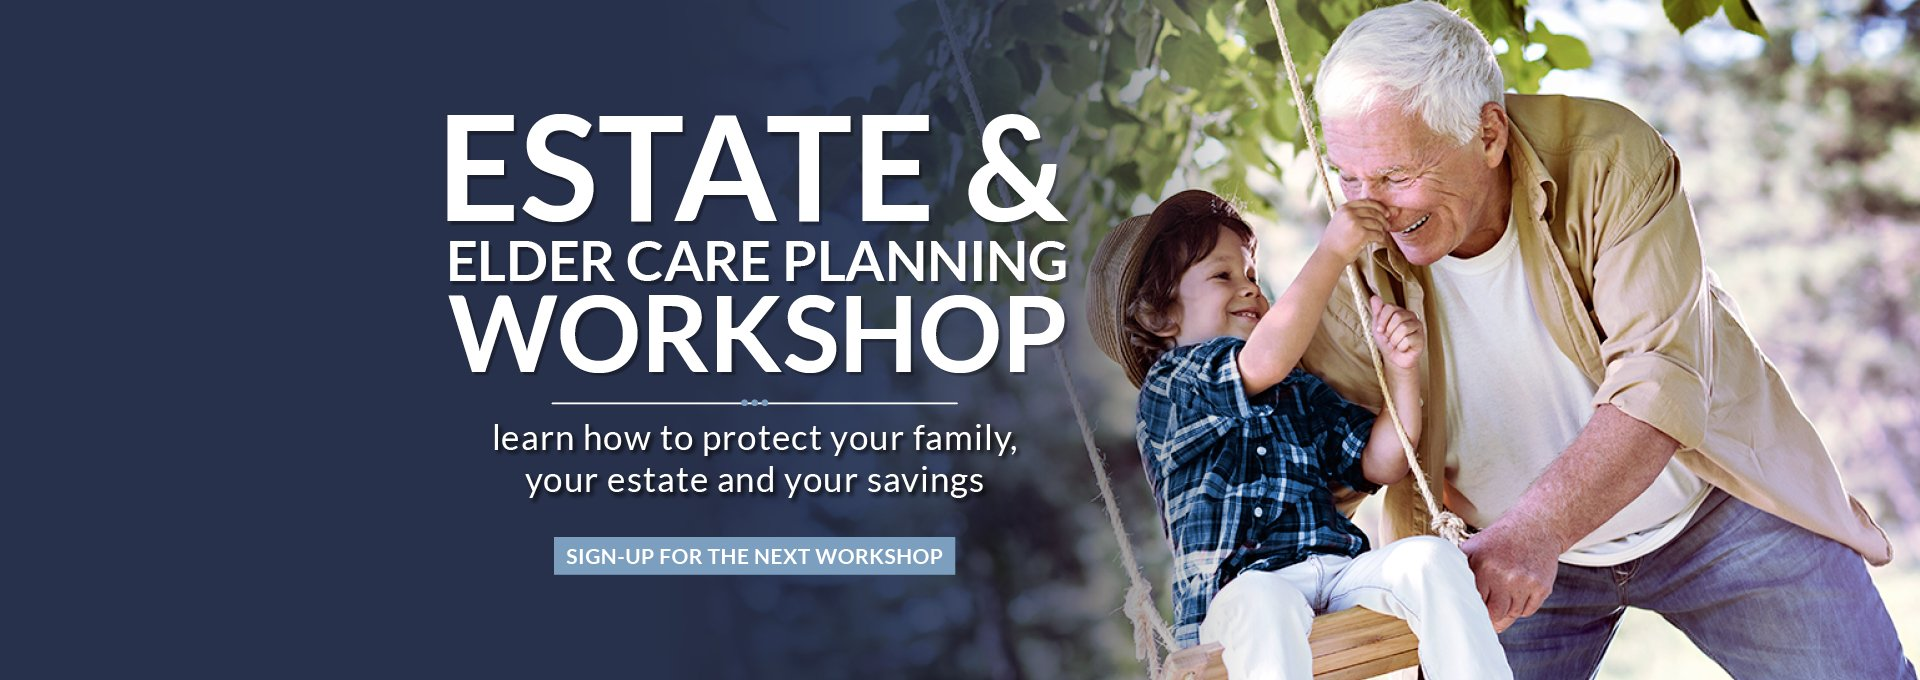 Learn more about estate planning in Augusta GA and Aiken SC at one of our free workshops today!